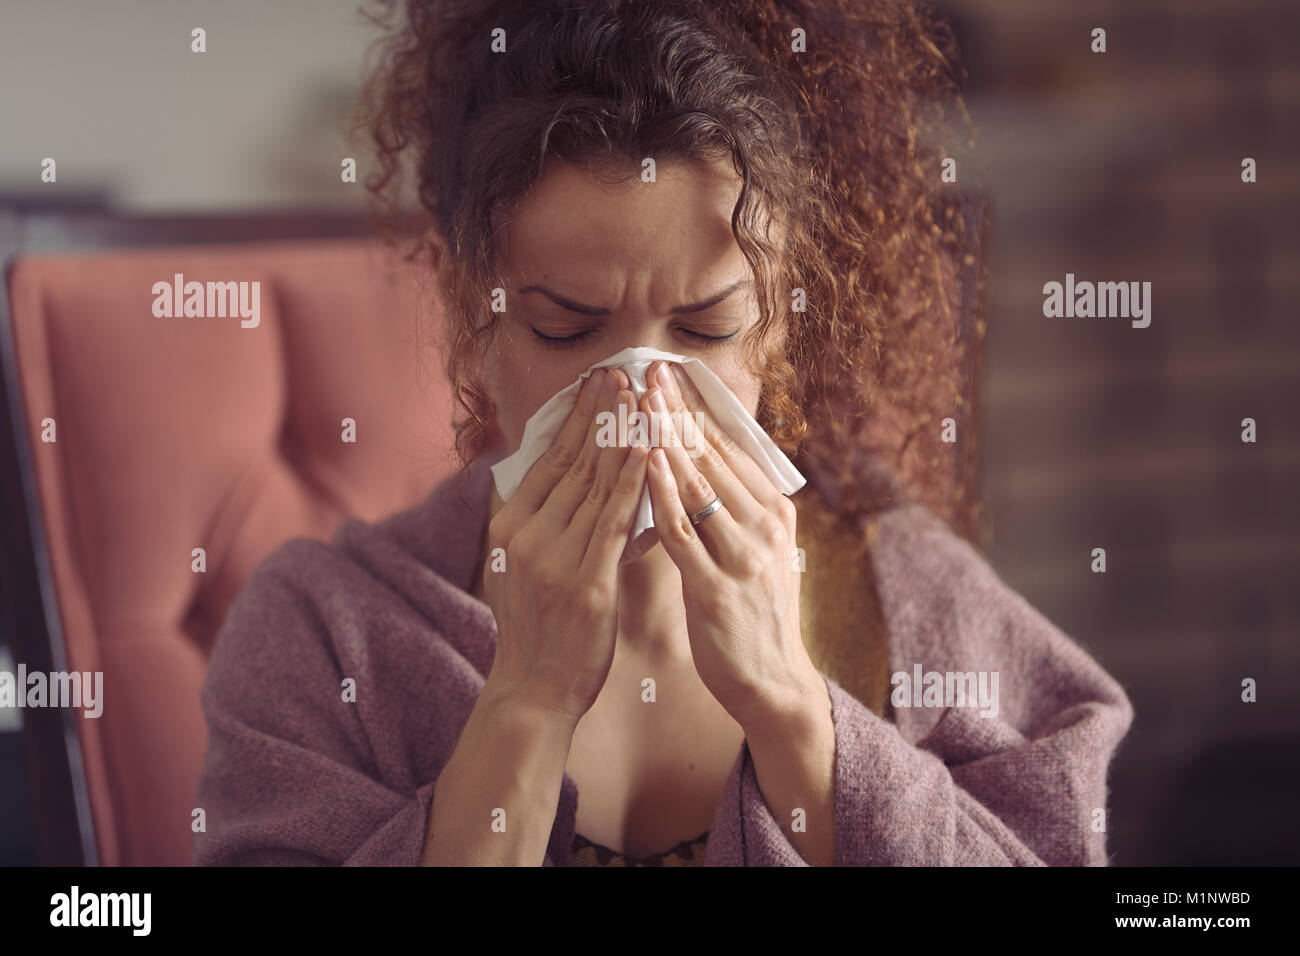 Woman blowing her runny nose or sneezing in a paper tissue - Stock Image